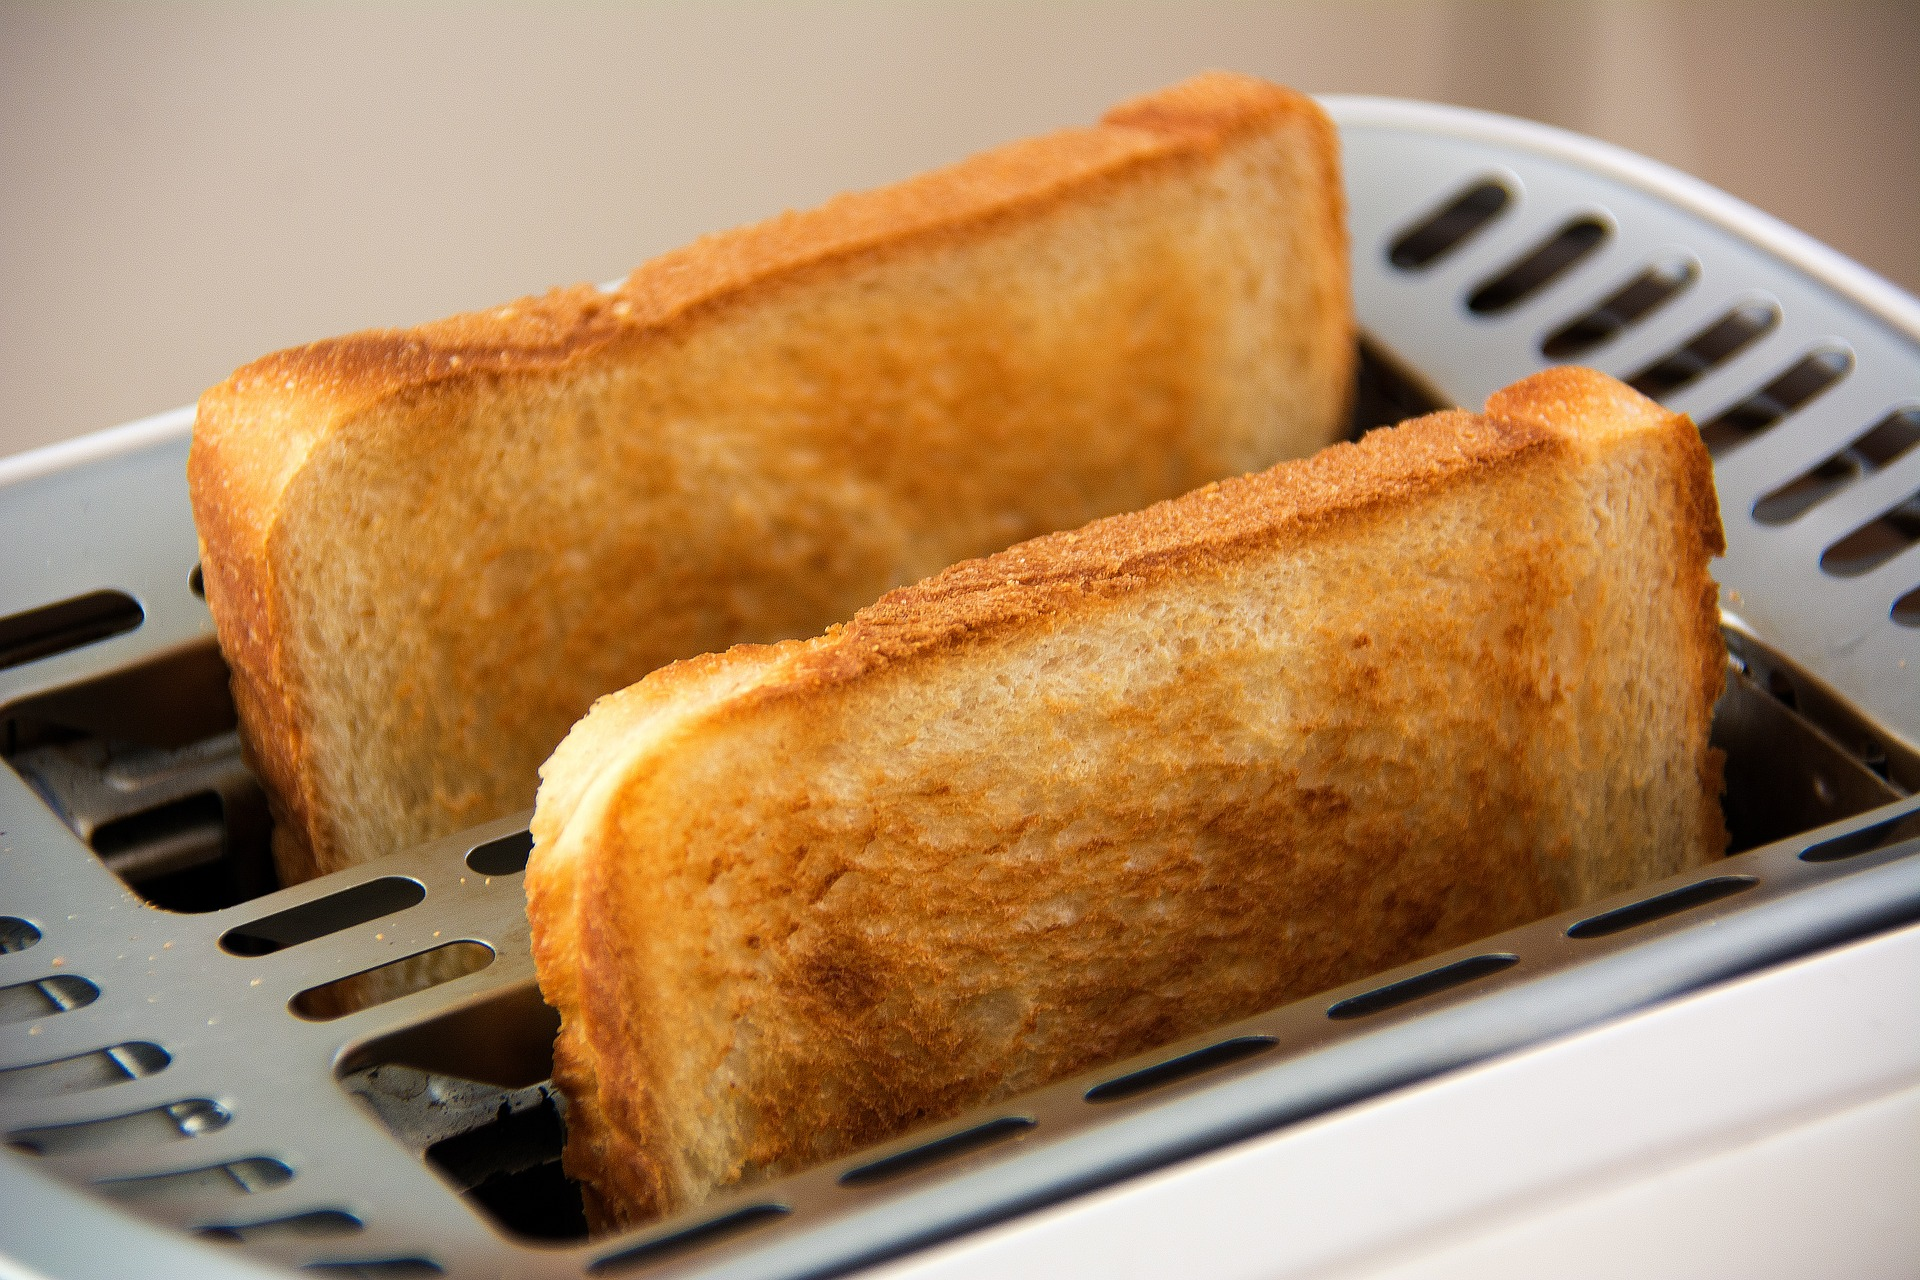 Two slices of bread in toaster